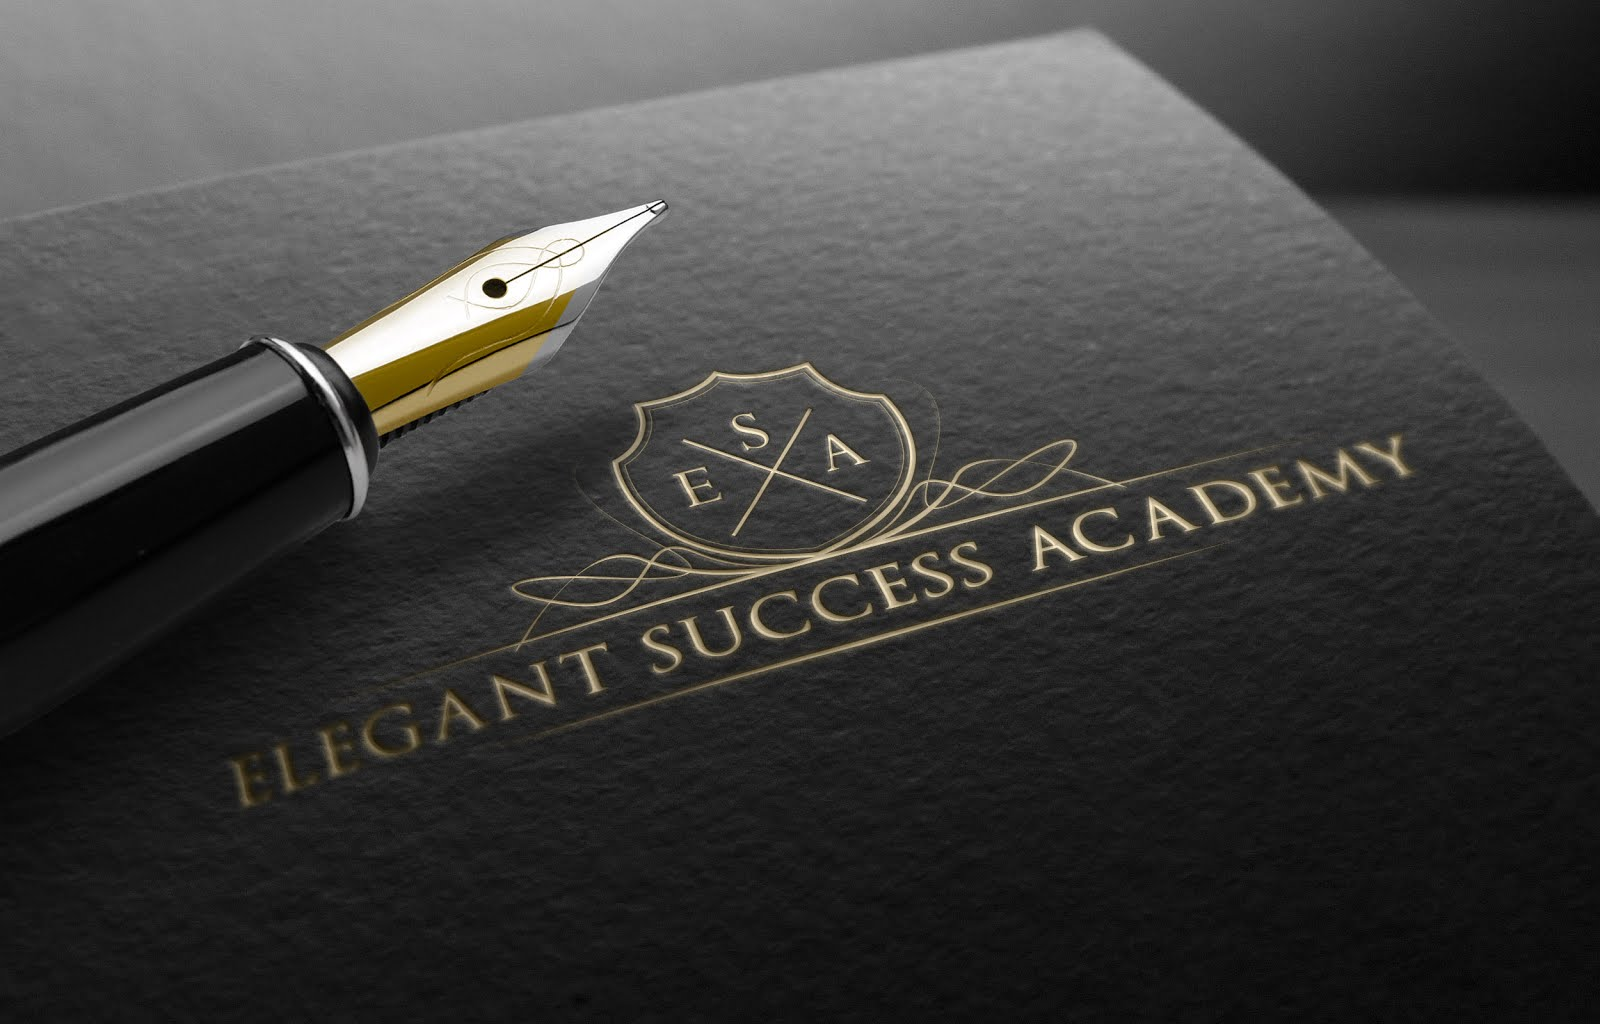 The Elegant Success Academy